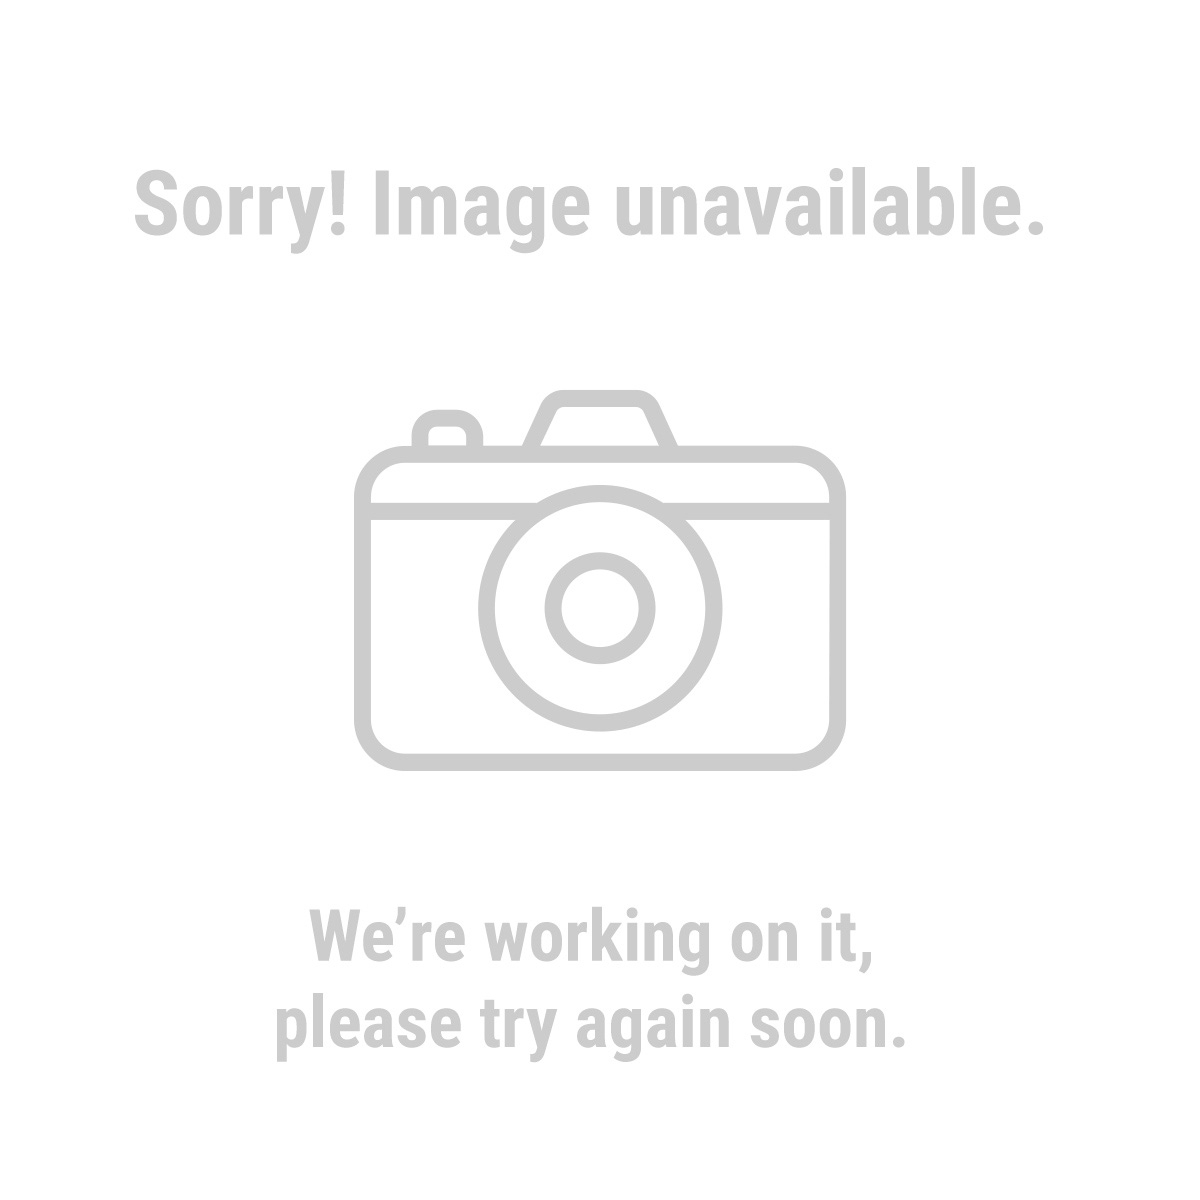 Predator Generators 69675 212cc, 4000 Watts Max/3200 Watts Rated Portable Generator - Certified for California